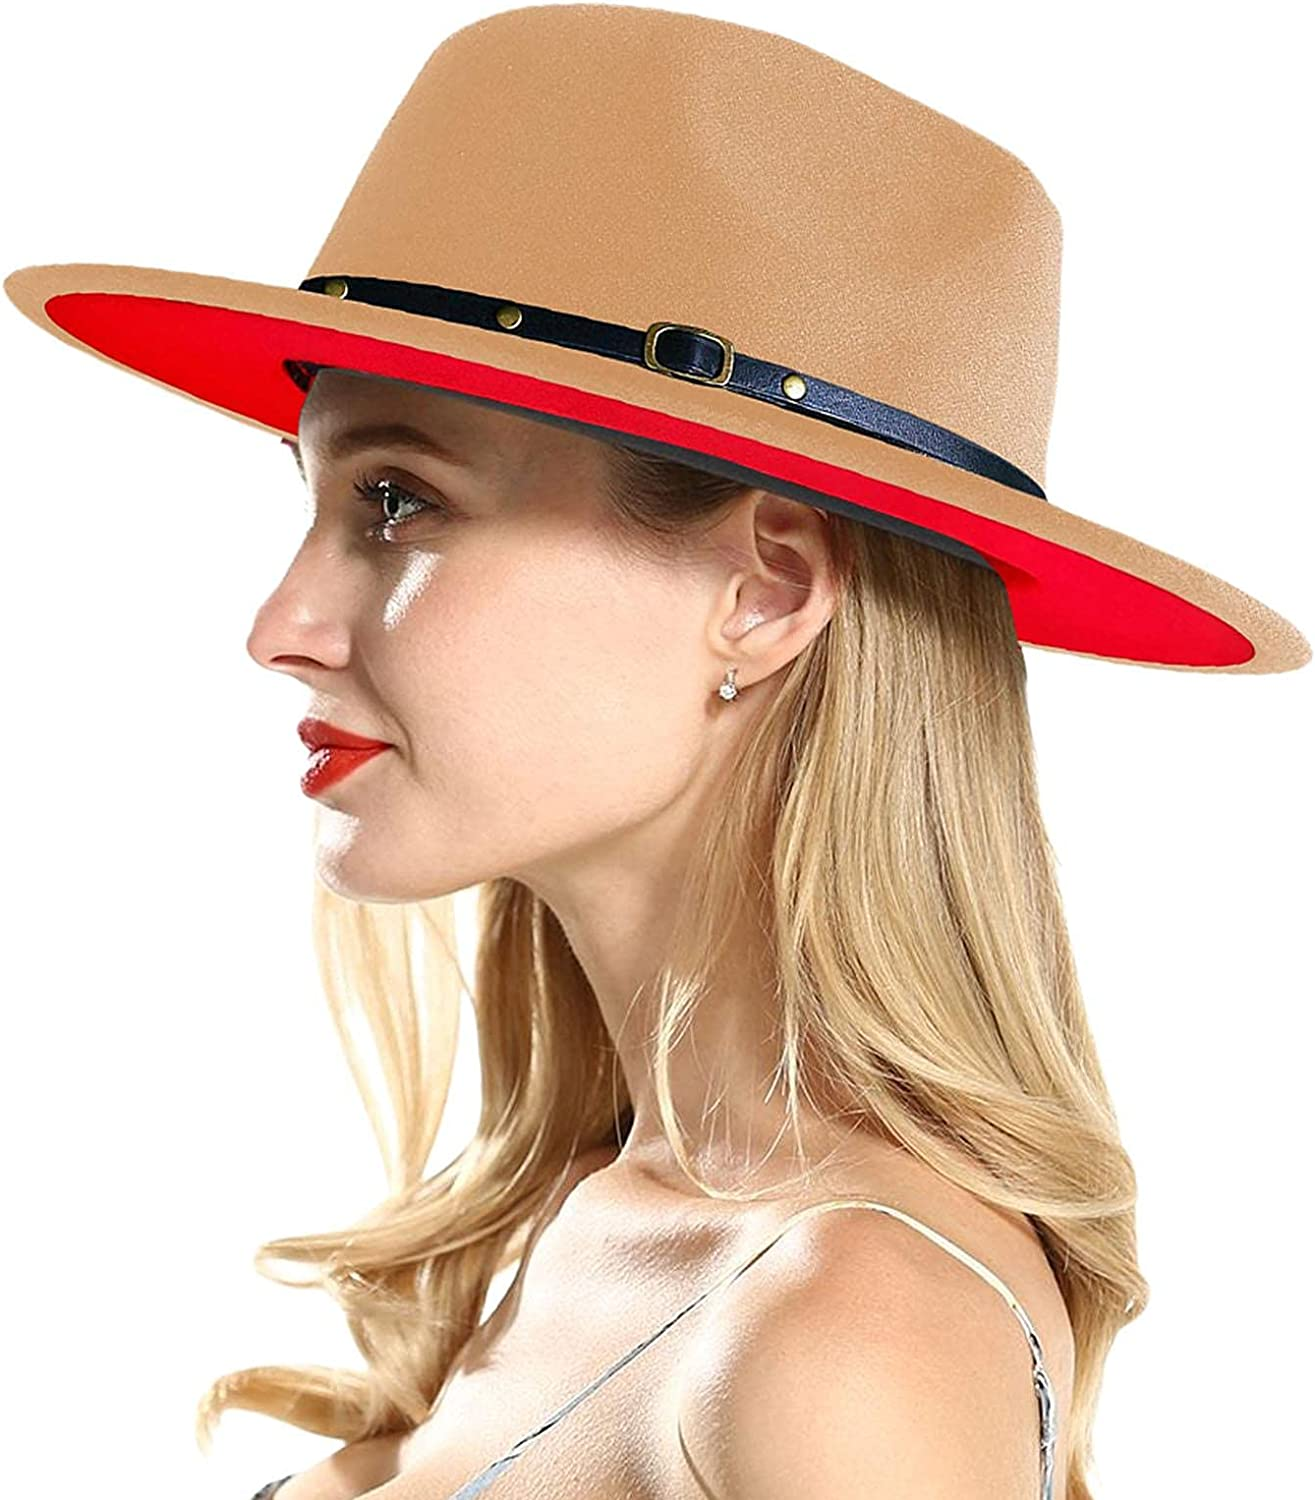 Nc Fashion Classic Wide Brim Hats Adjustable Fedora Strap Caps for Women&Men for Gardening Hiking Camping